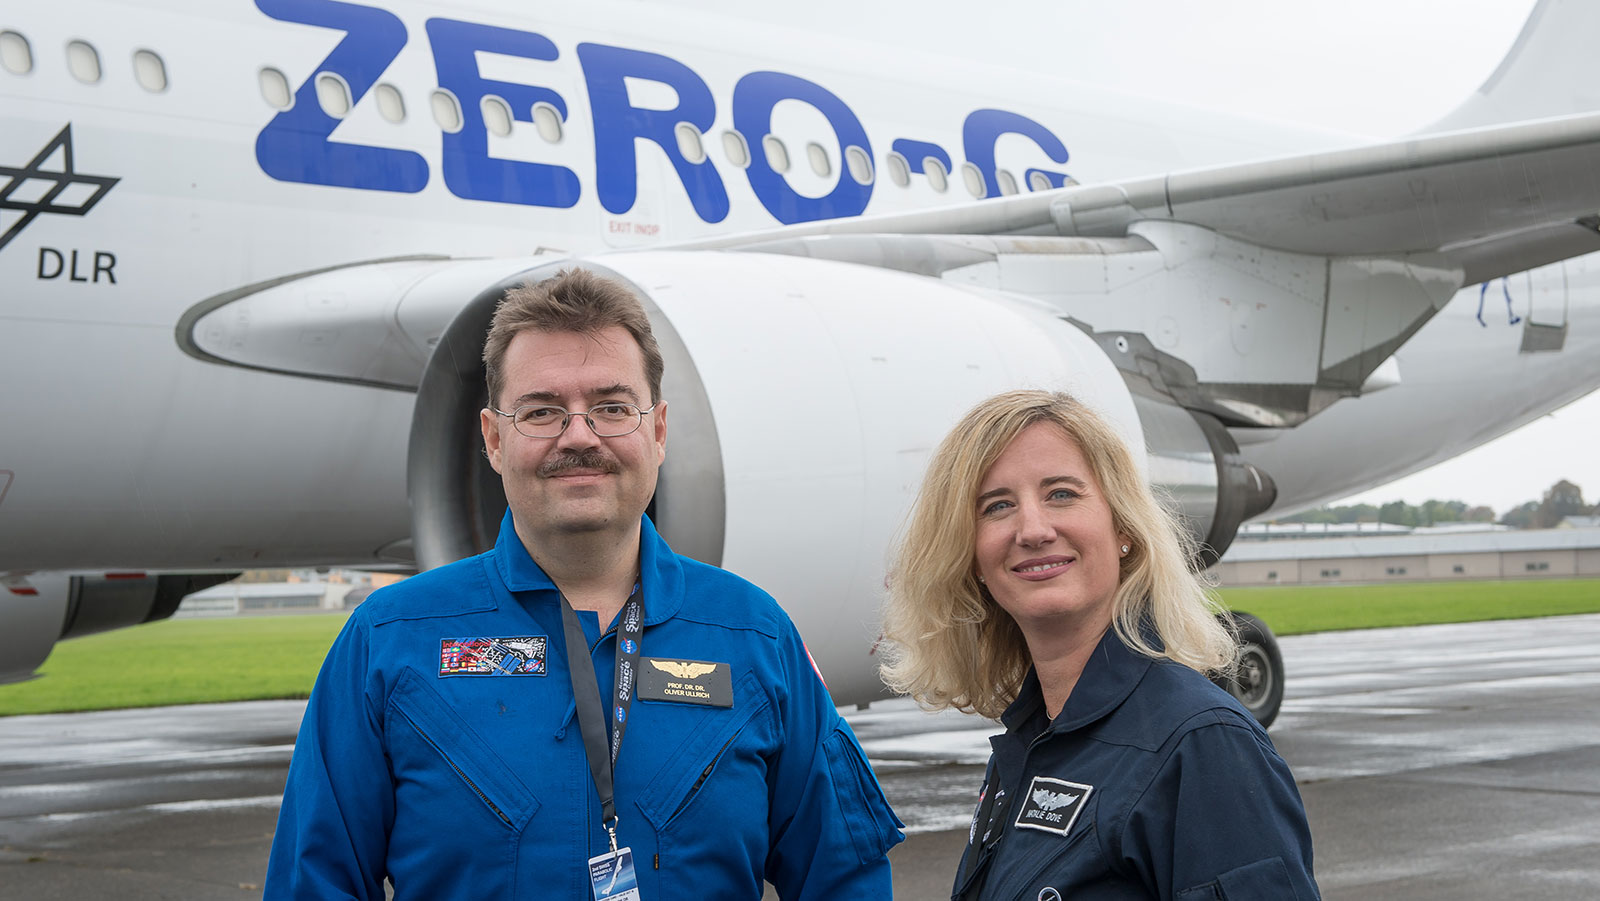 <p>UZH professor Oliver Ullrich, director of the Space Hub, and Natalie Dove (Dovespace/Nussbaumer Reisen) organize the Swiss Parabolic Flights. (Picture: Regina Sablotny, UZH</p>